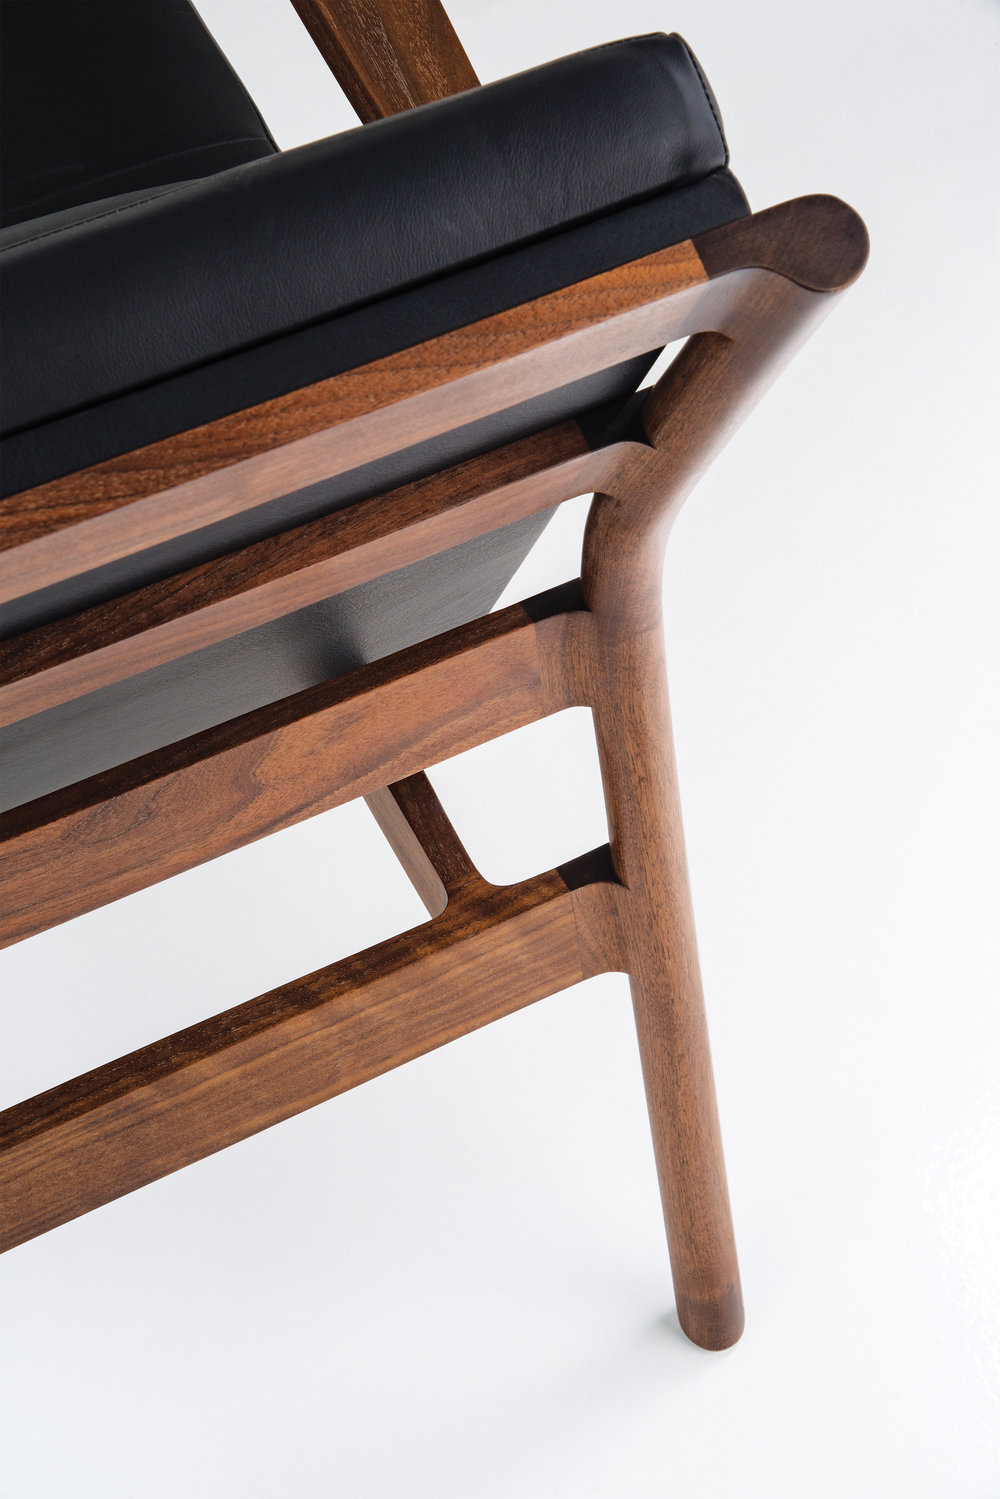 > Detail of Hartford Lounge Chair joinery.